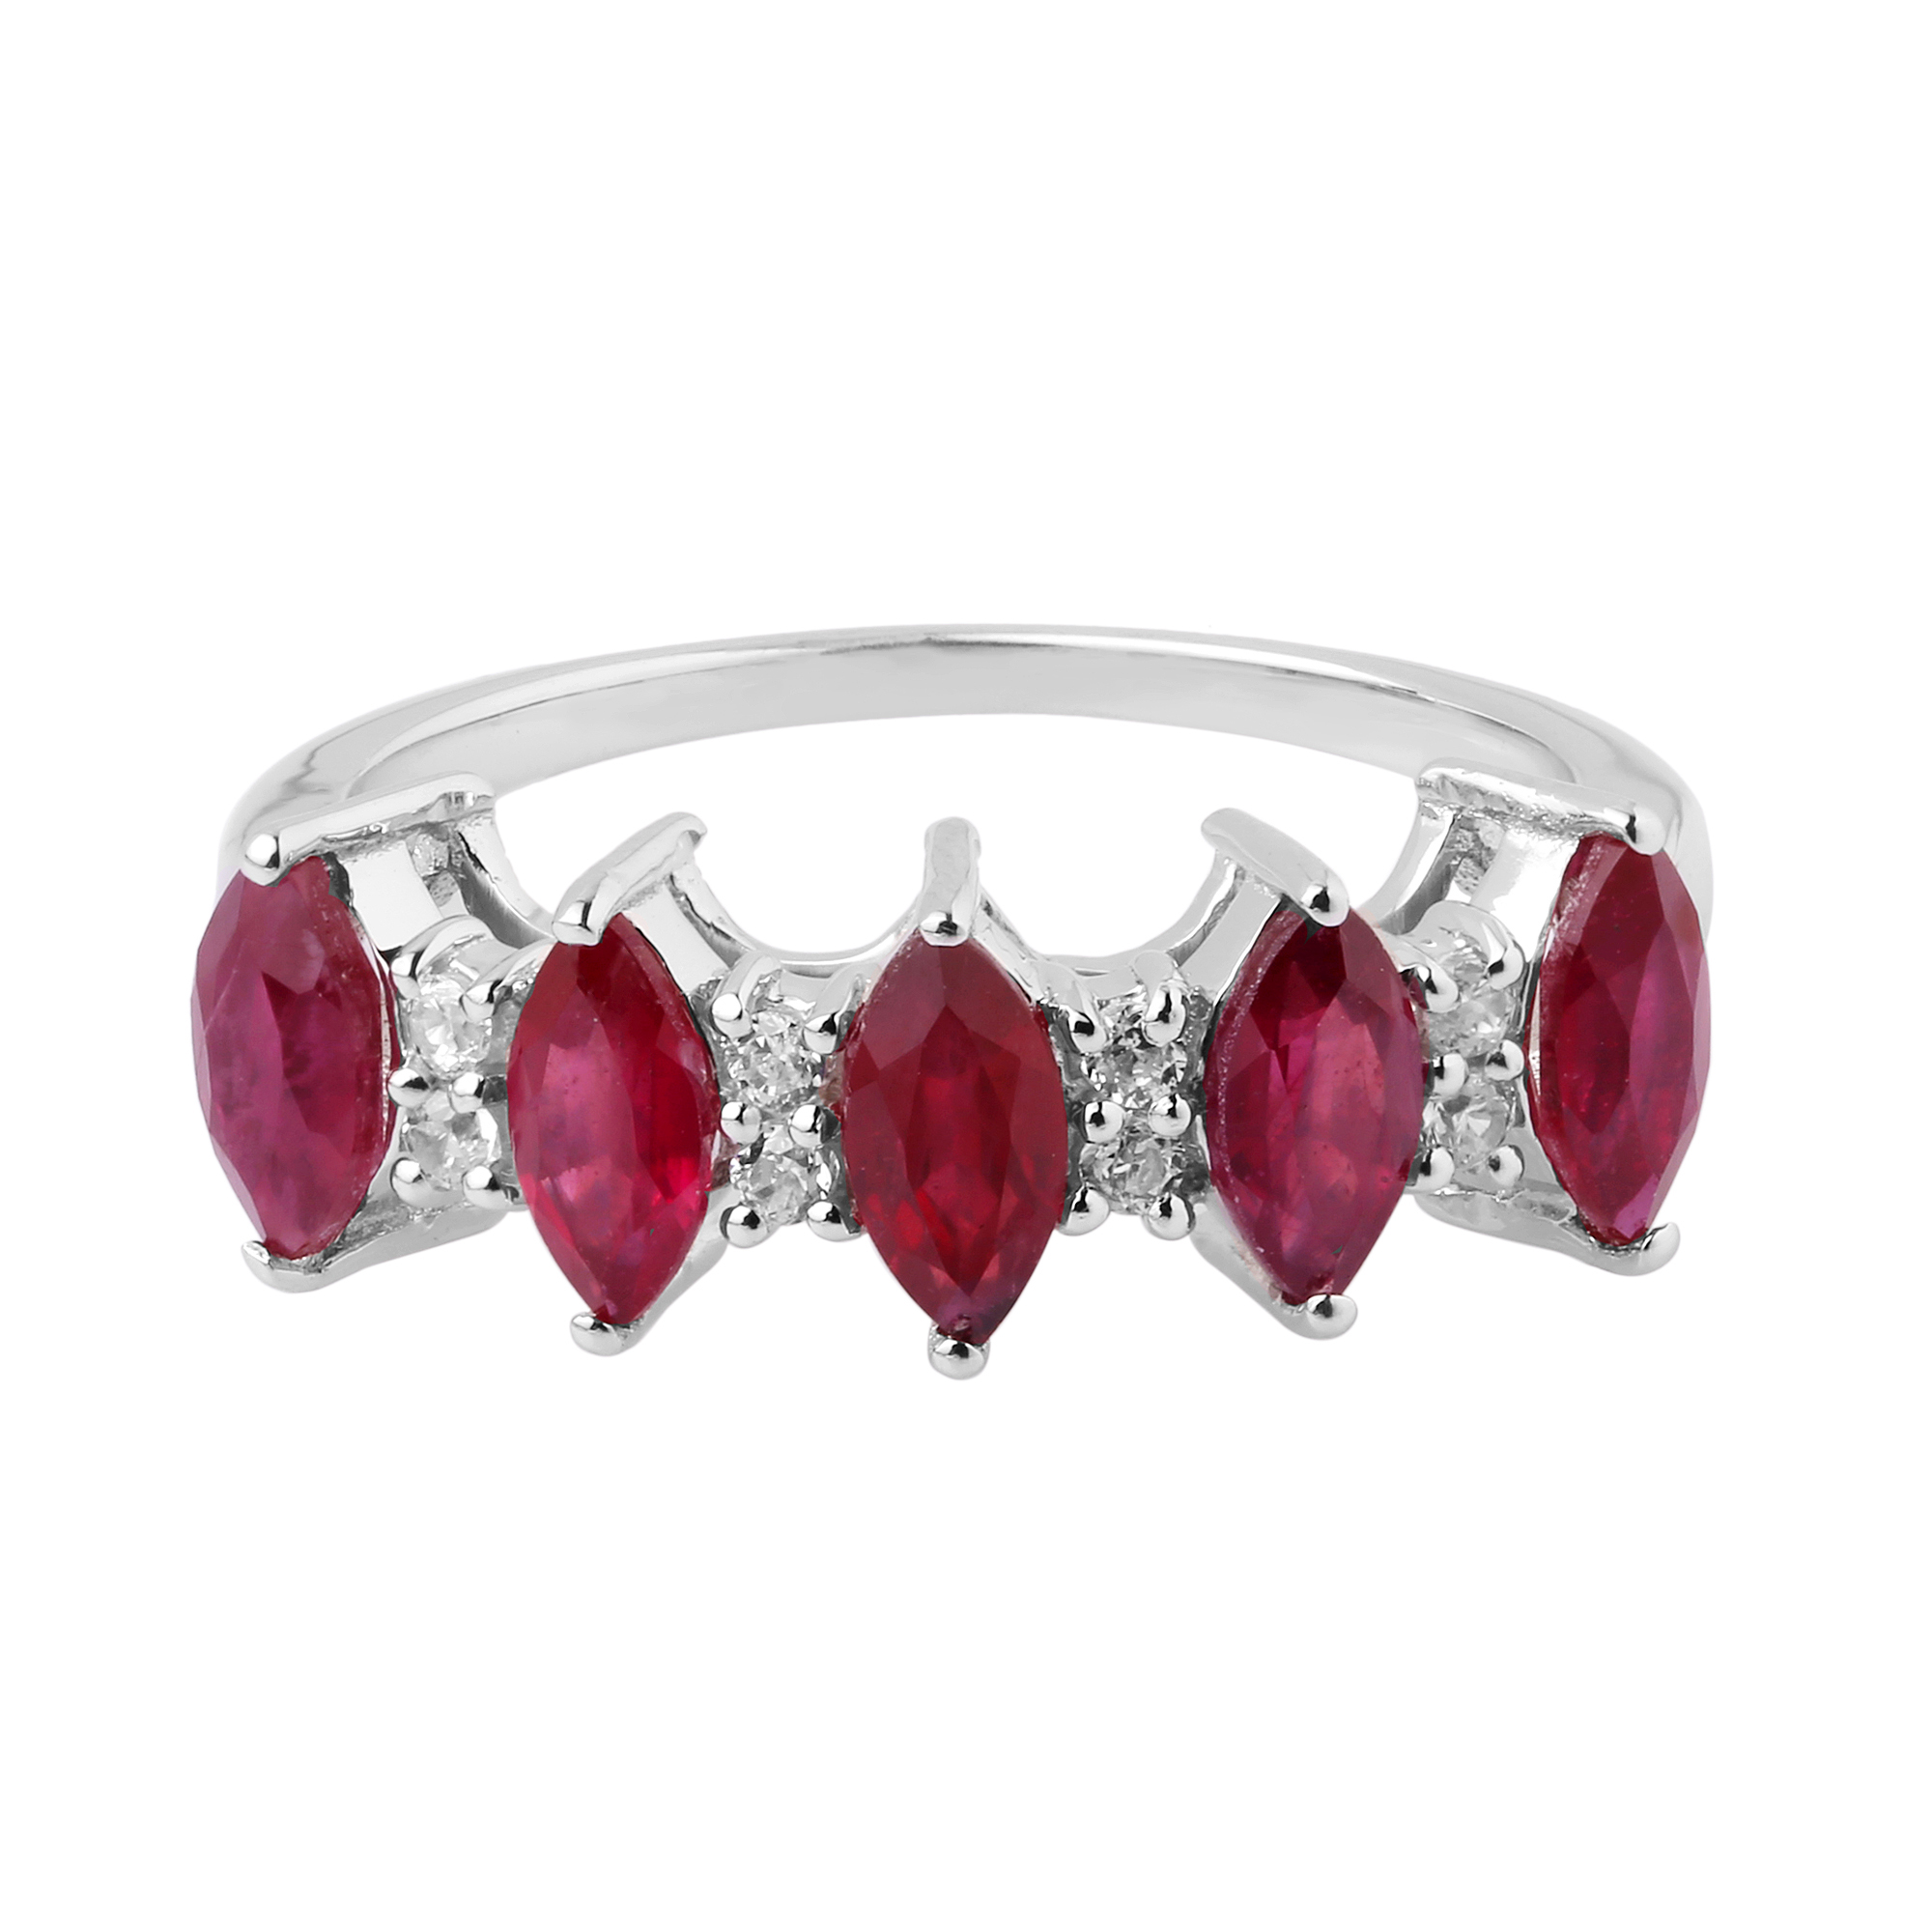 Ruby topaz Sterling Silver Rings